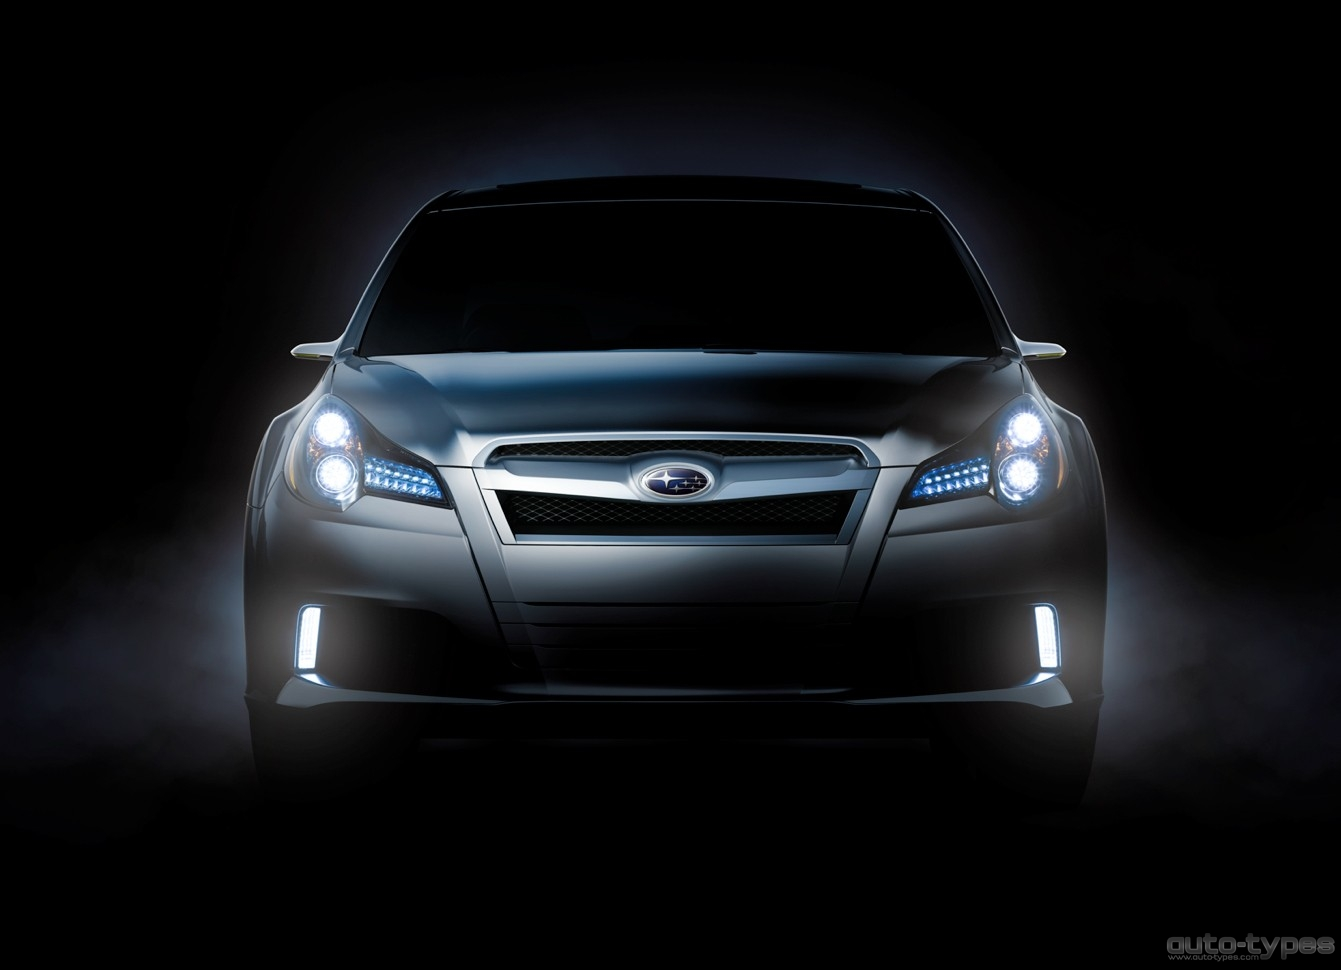 2013 Subaru Legacy Subaru Legacy and Outback of 2013 unveiled